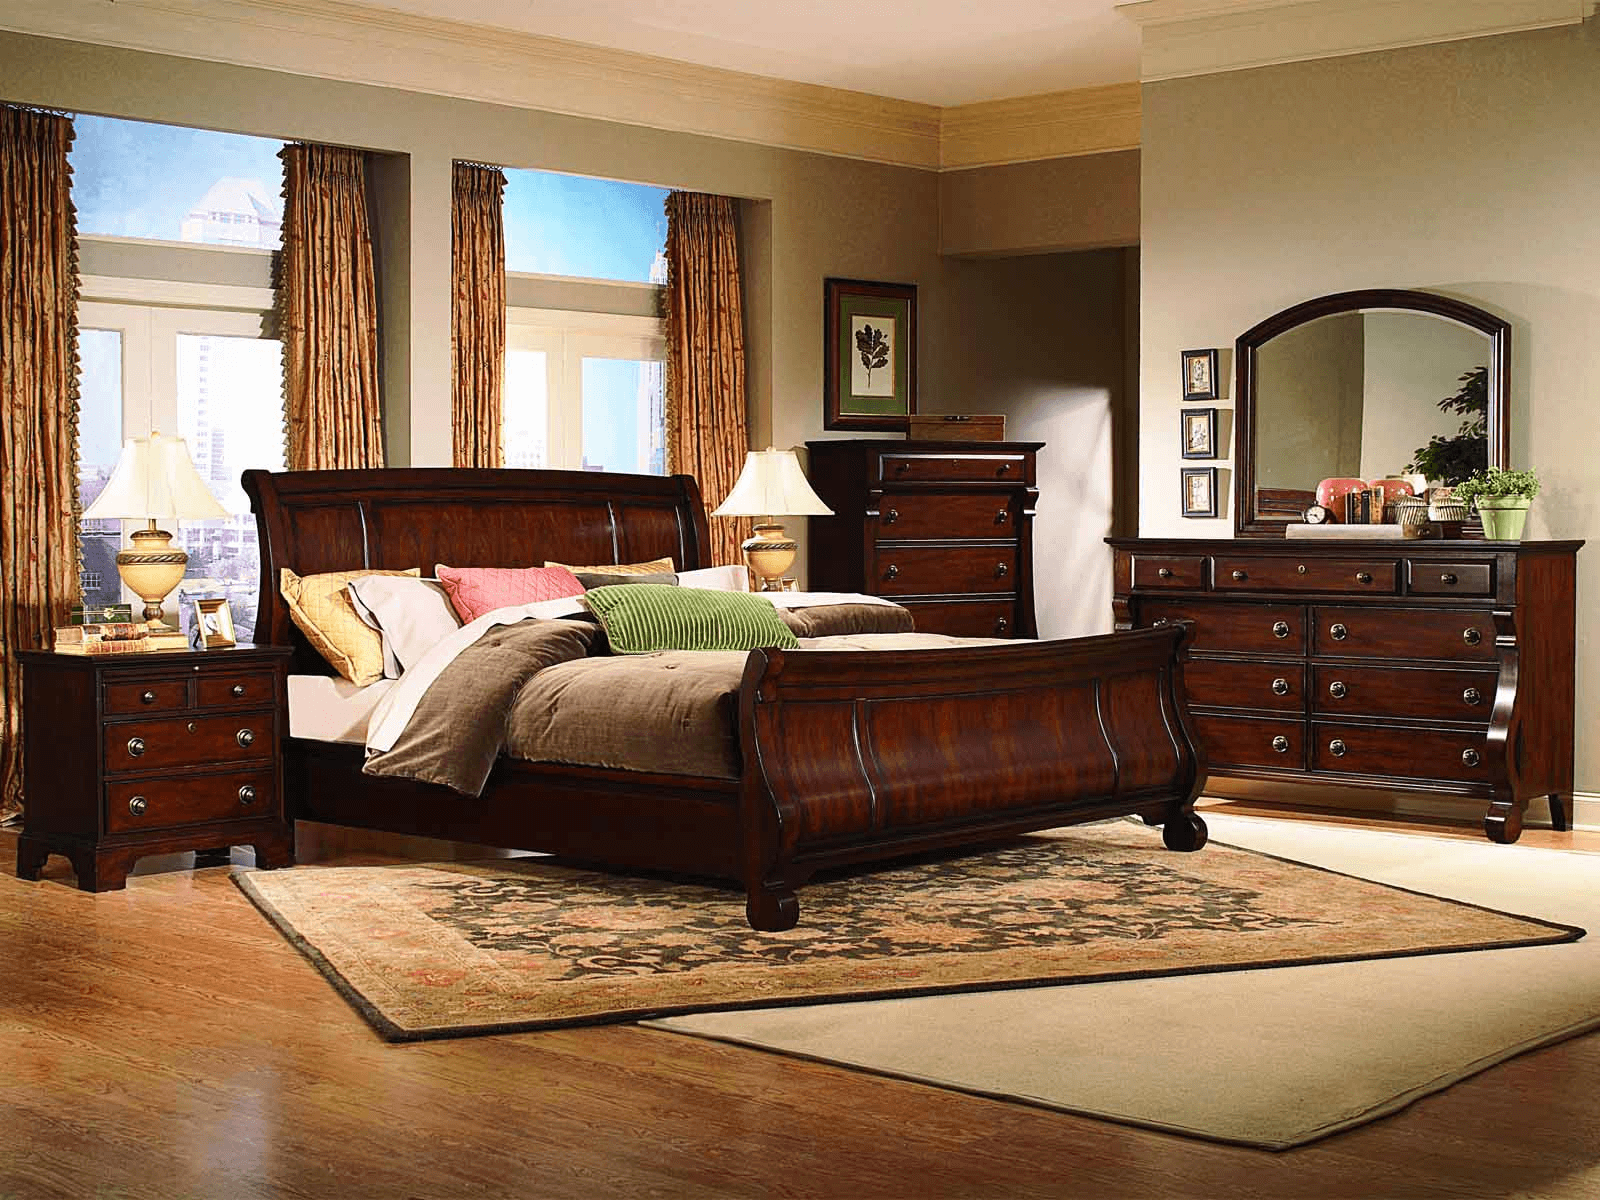 Bedroom decorating ideas with oak furniture